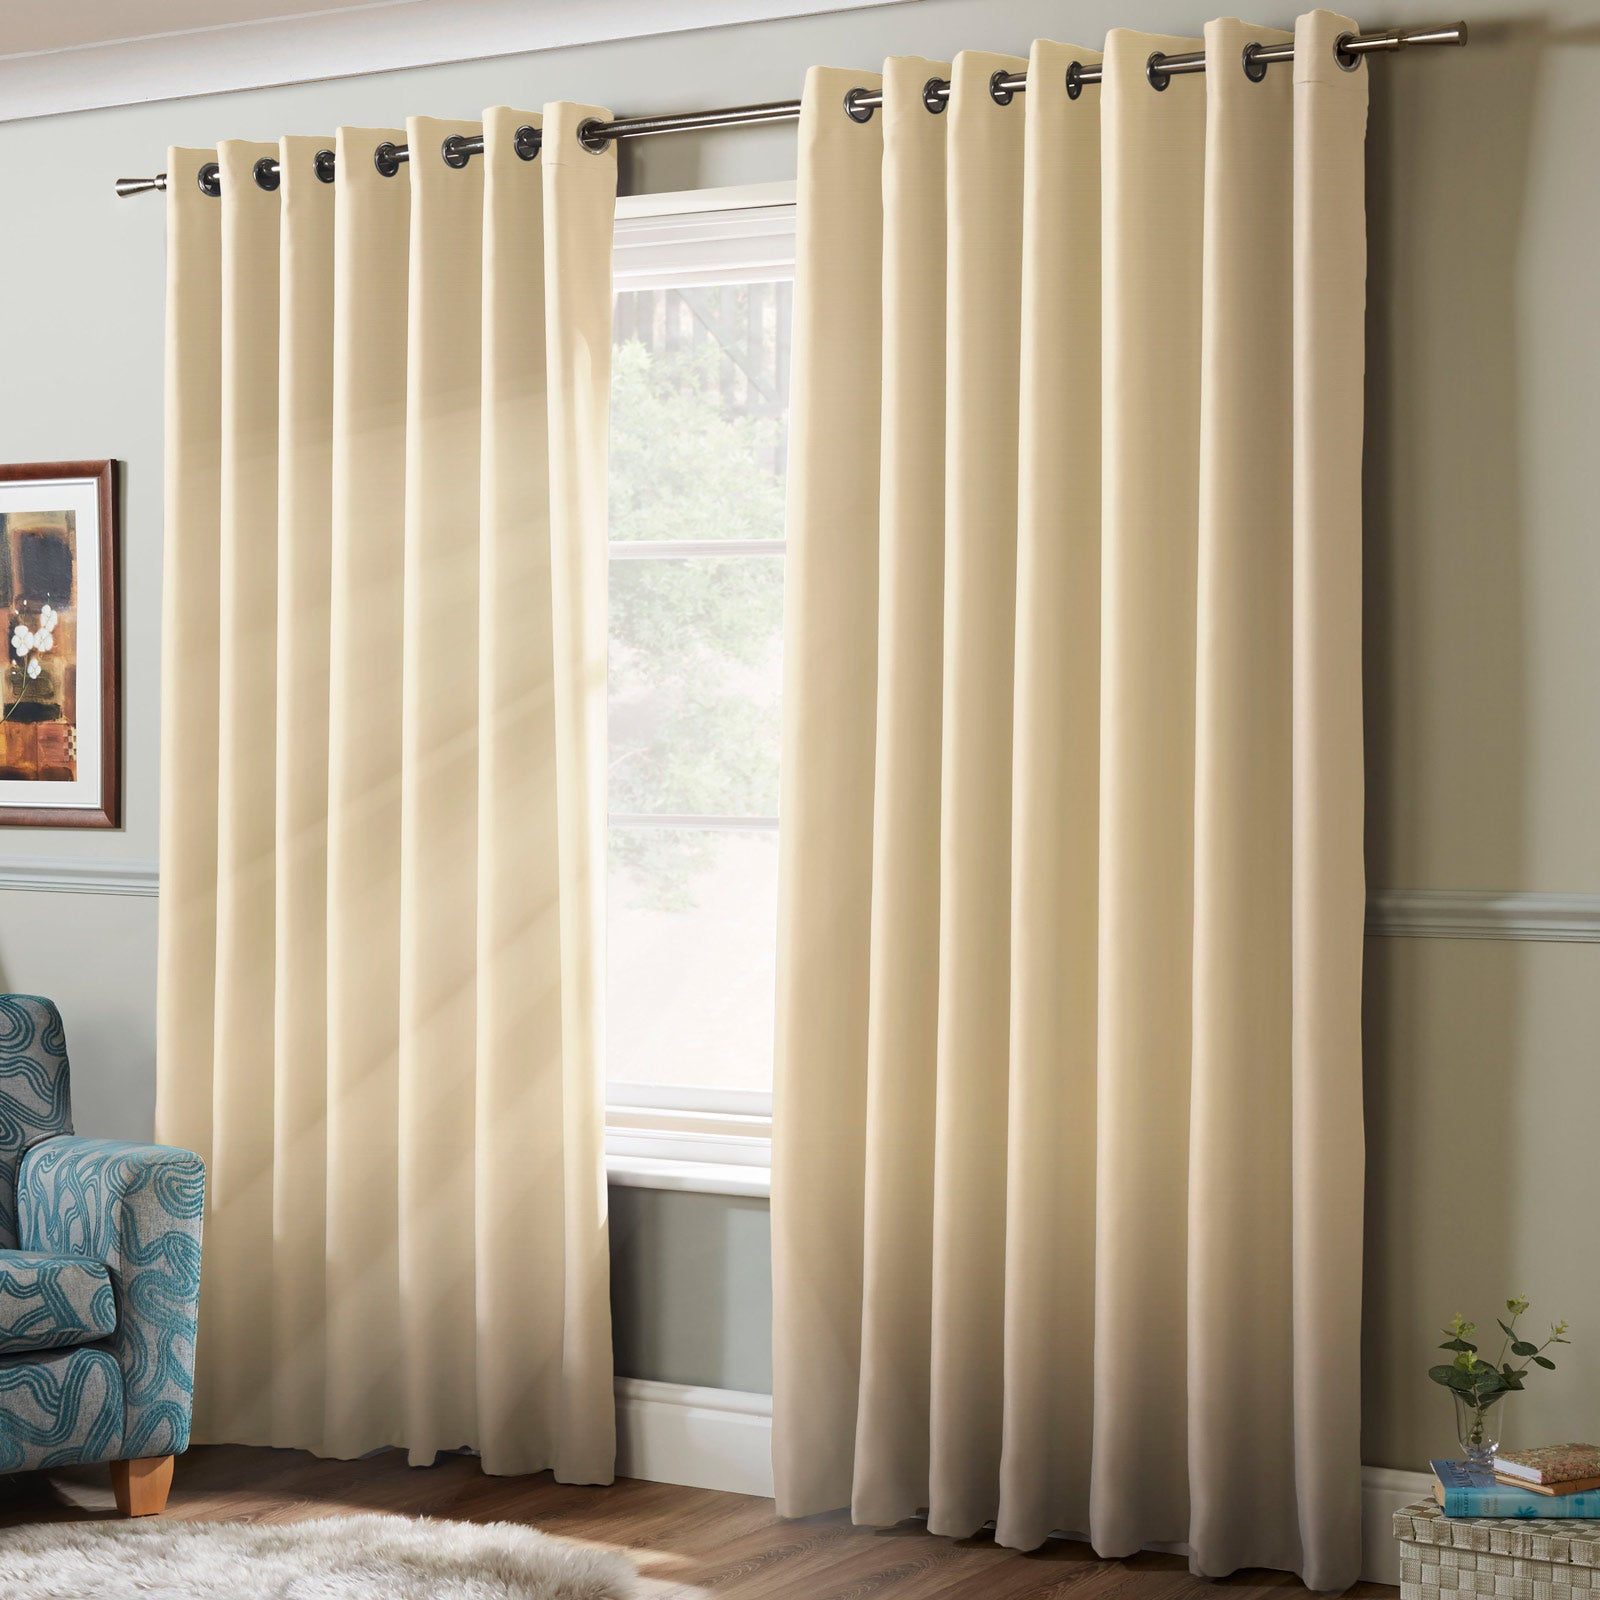 Plain Thermal Blackout Eyelet Curtains Cream - 41'' x 54'' - Ideal Textiles